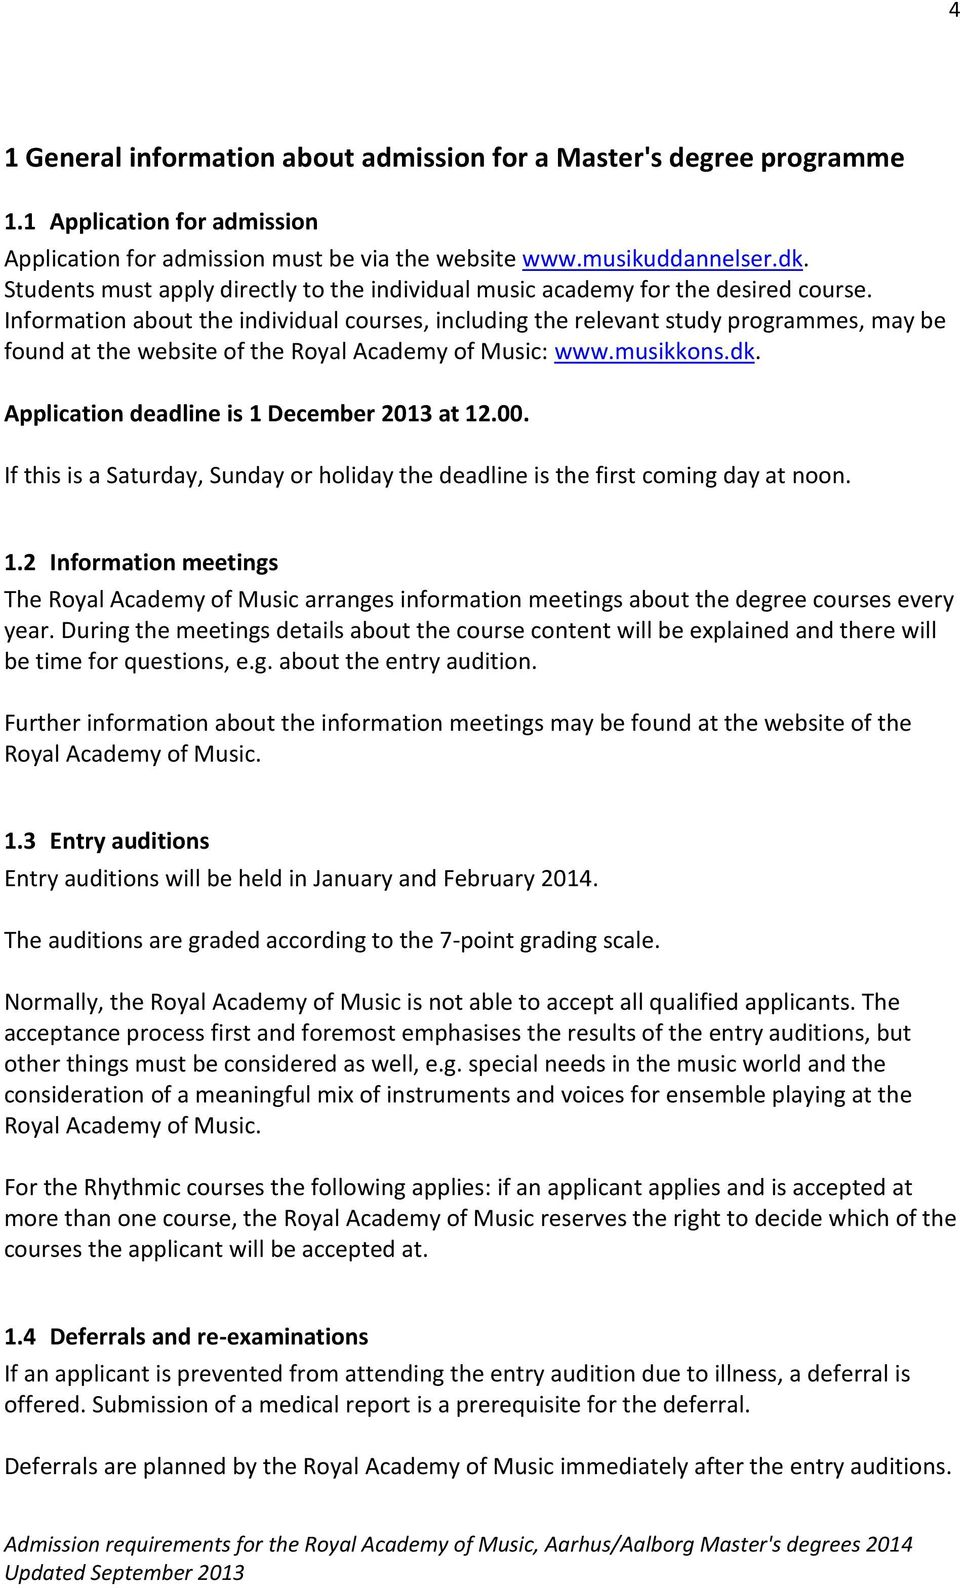 Information about the individual courses, including the relevant study programmes, may be found at the website of the Royal Academy of Music: www.musikkons.dk.